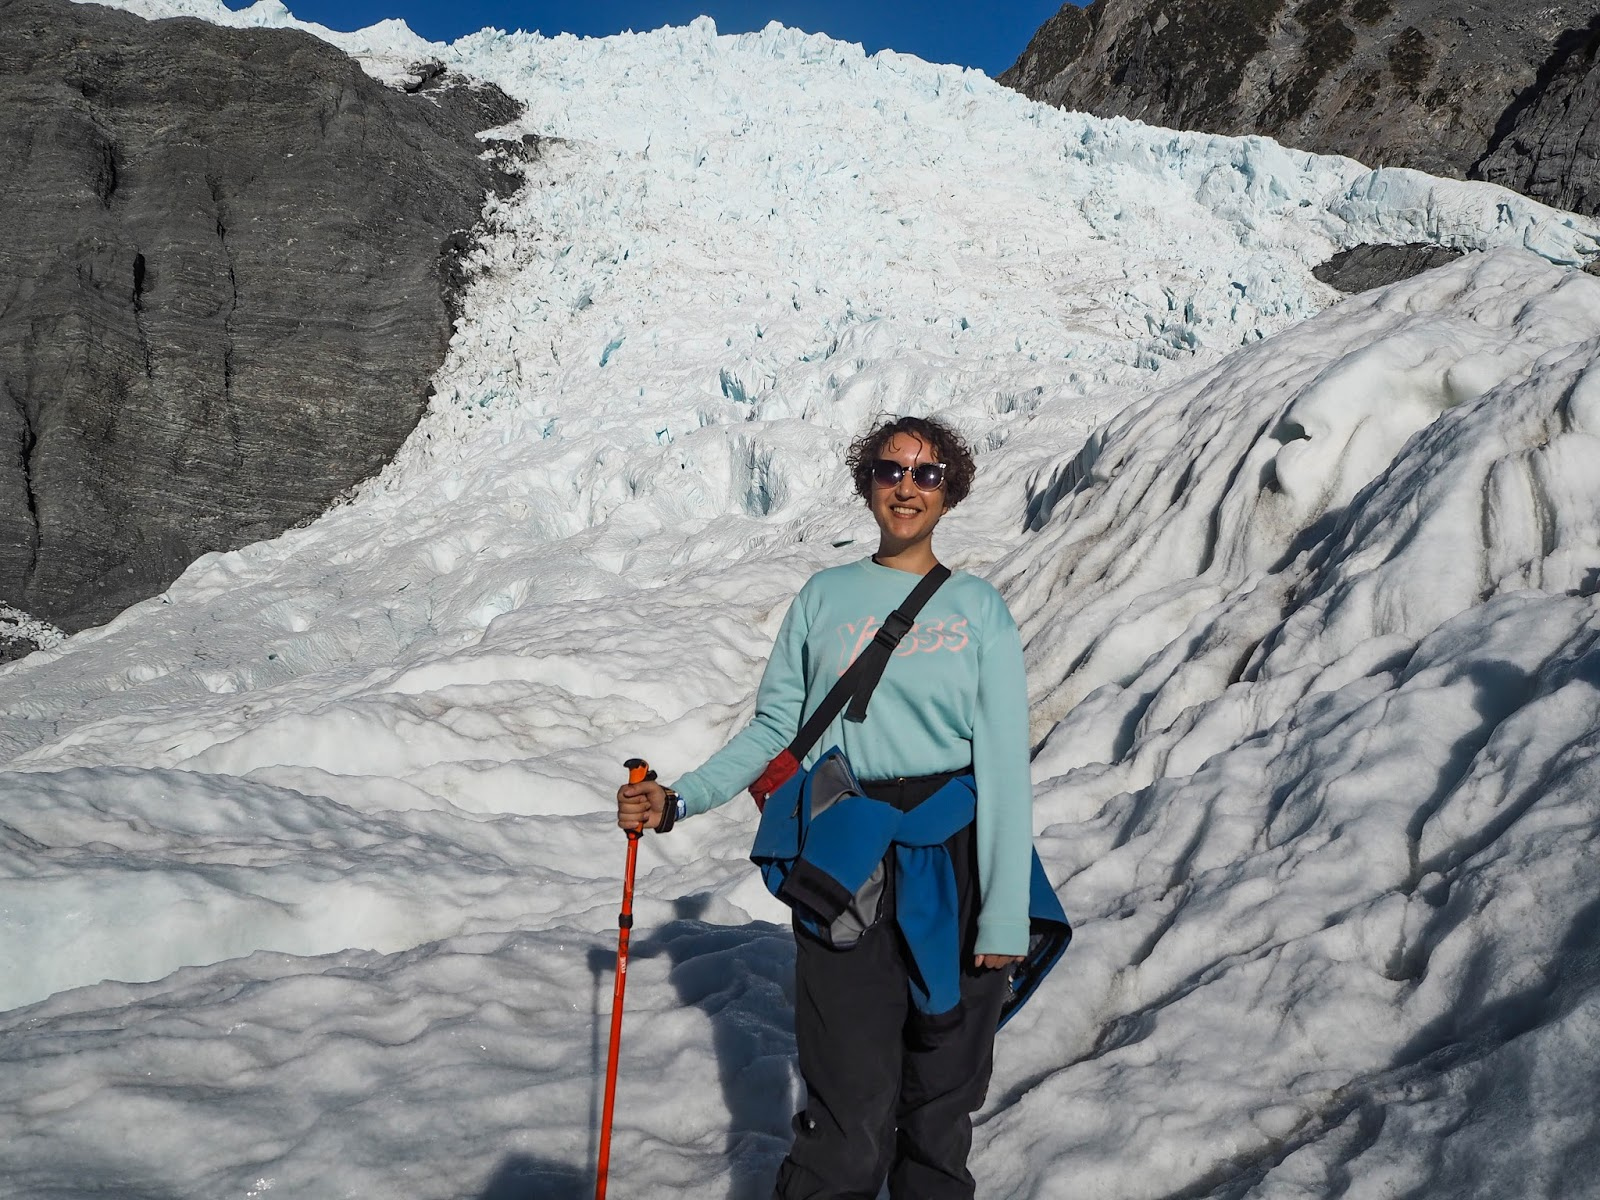 Hiking the Incredible Franz Josef Glacier, New Zealand